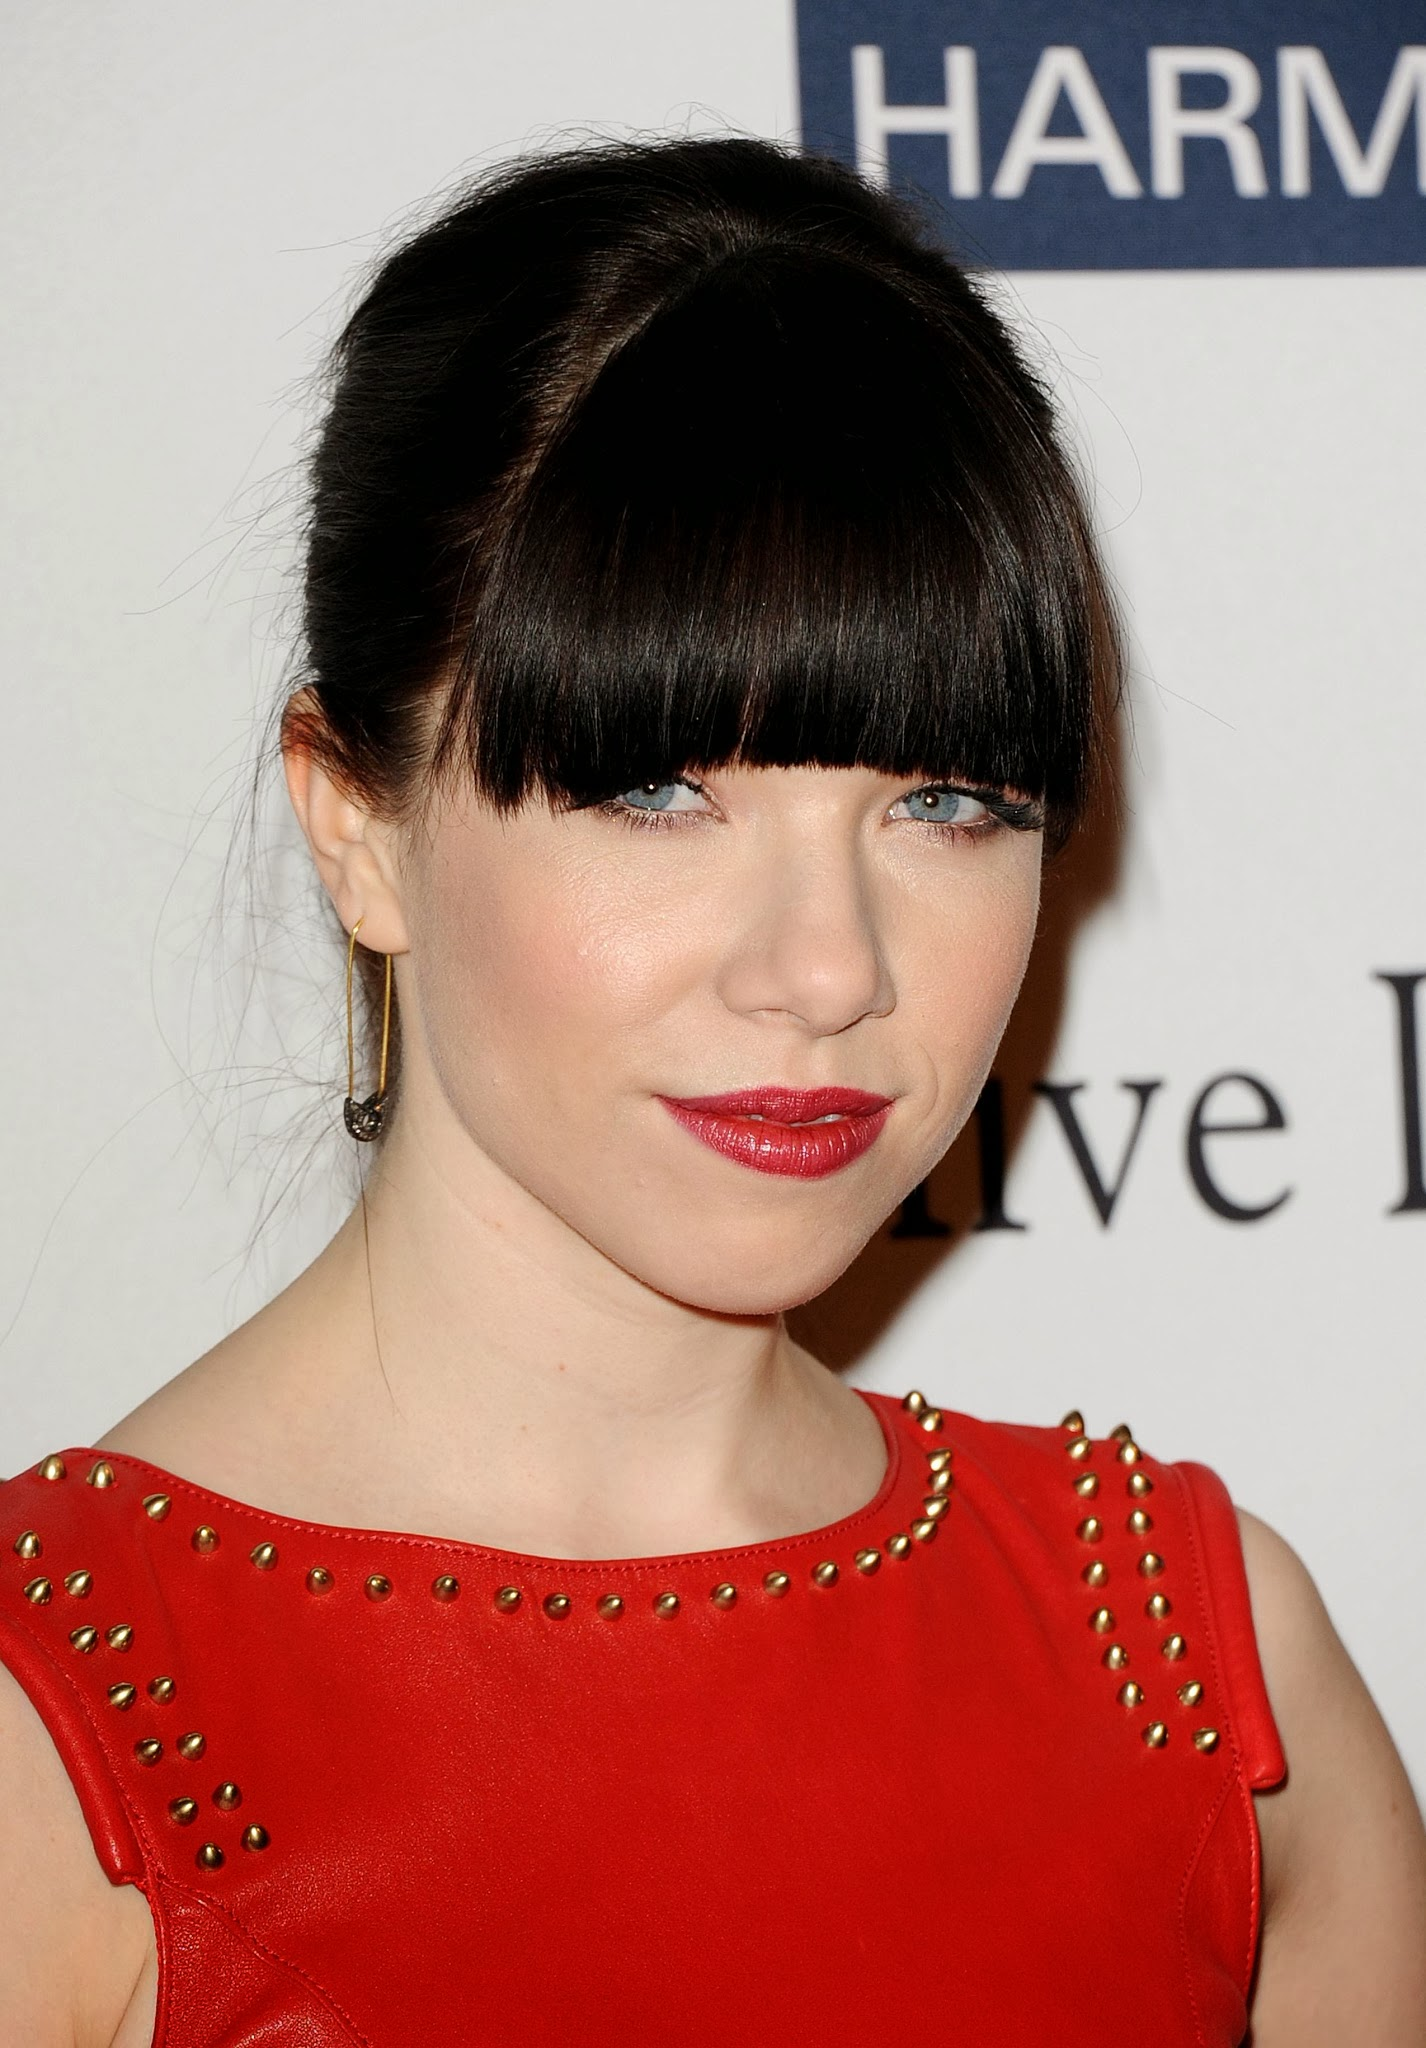 Carly B Rapper: Female Singers: Carly Rae Jepsen Pictures Gallery (2